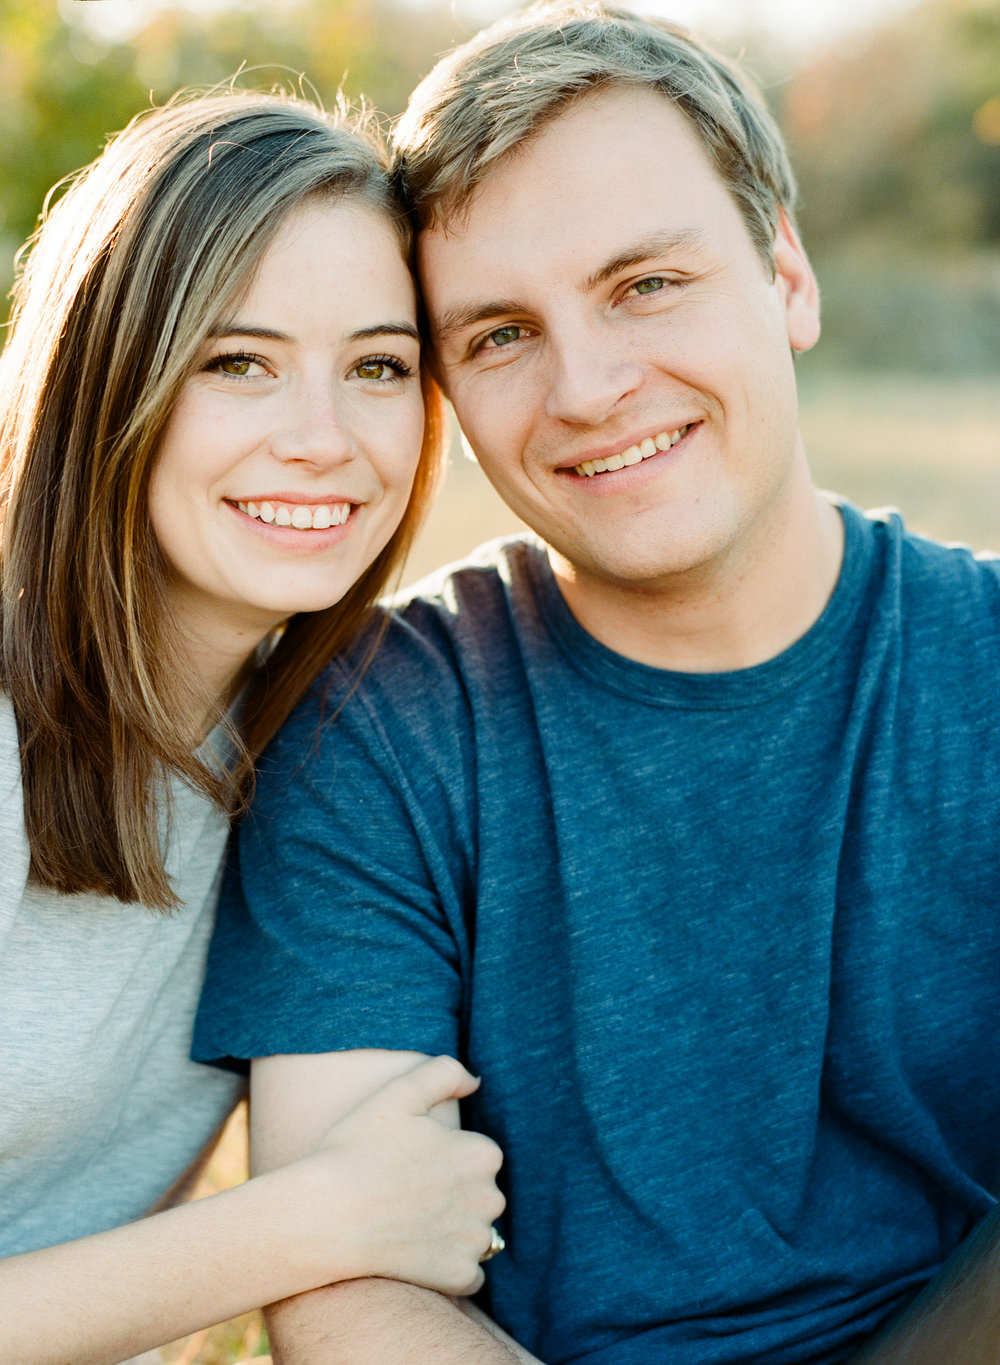 Engagement Session Outfits-103.jpg